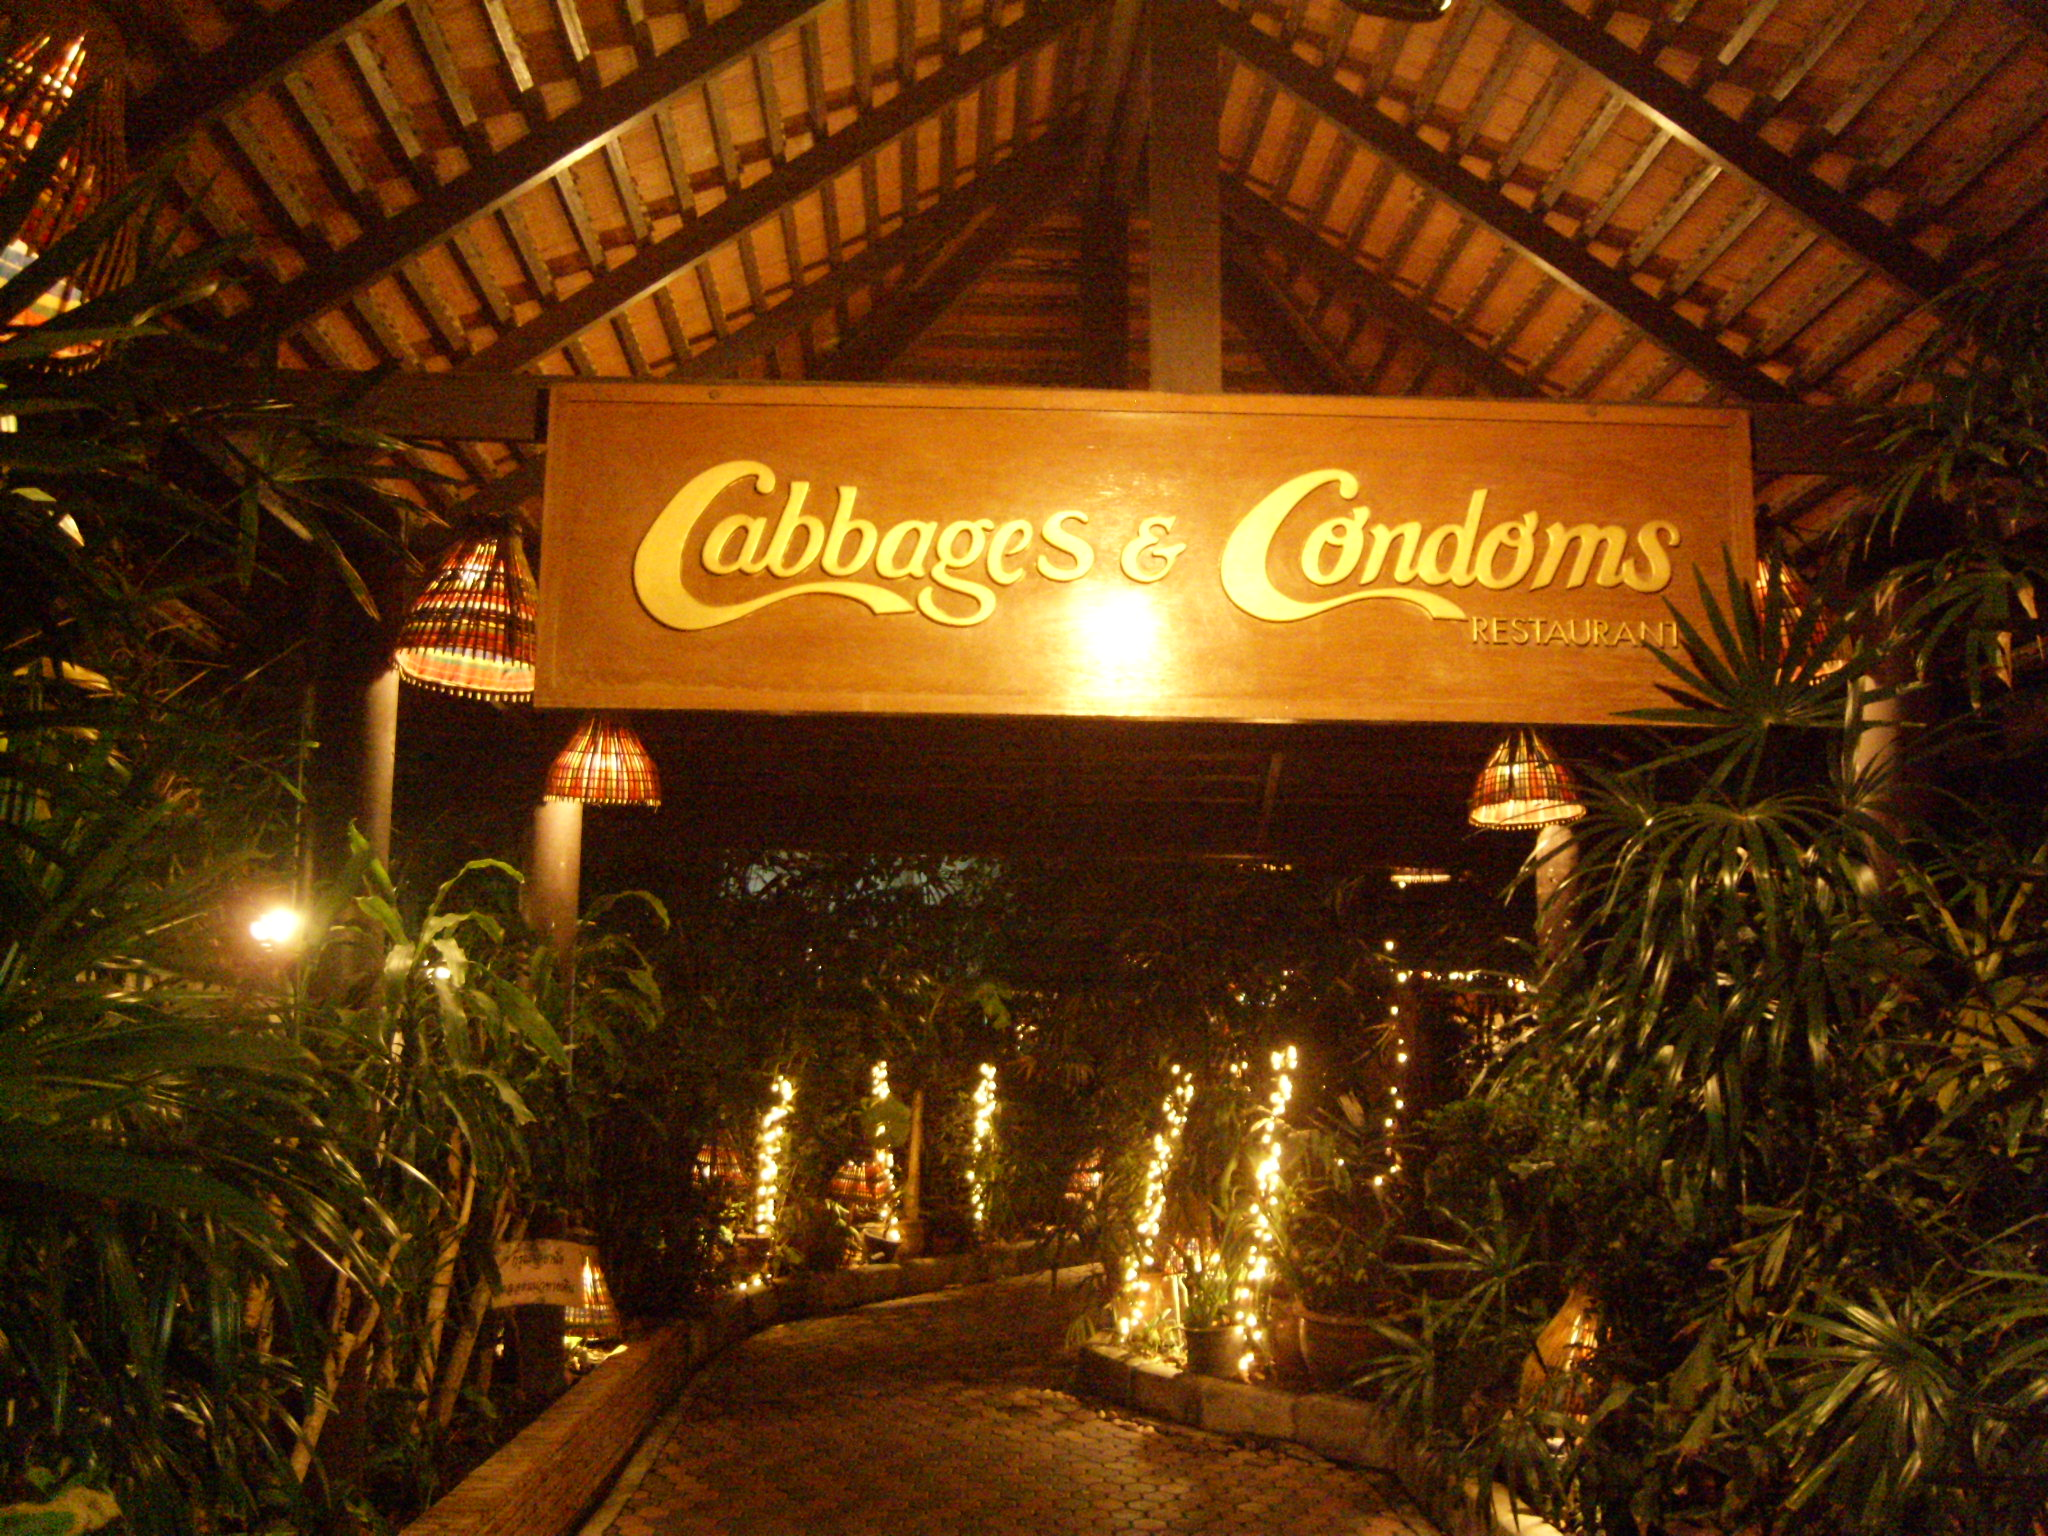 Cabbages and Condoms, Bangkok - In the Know Traveler